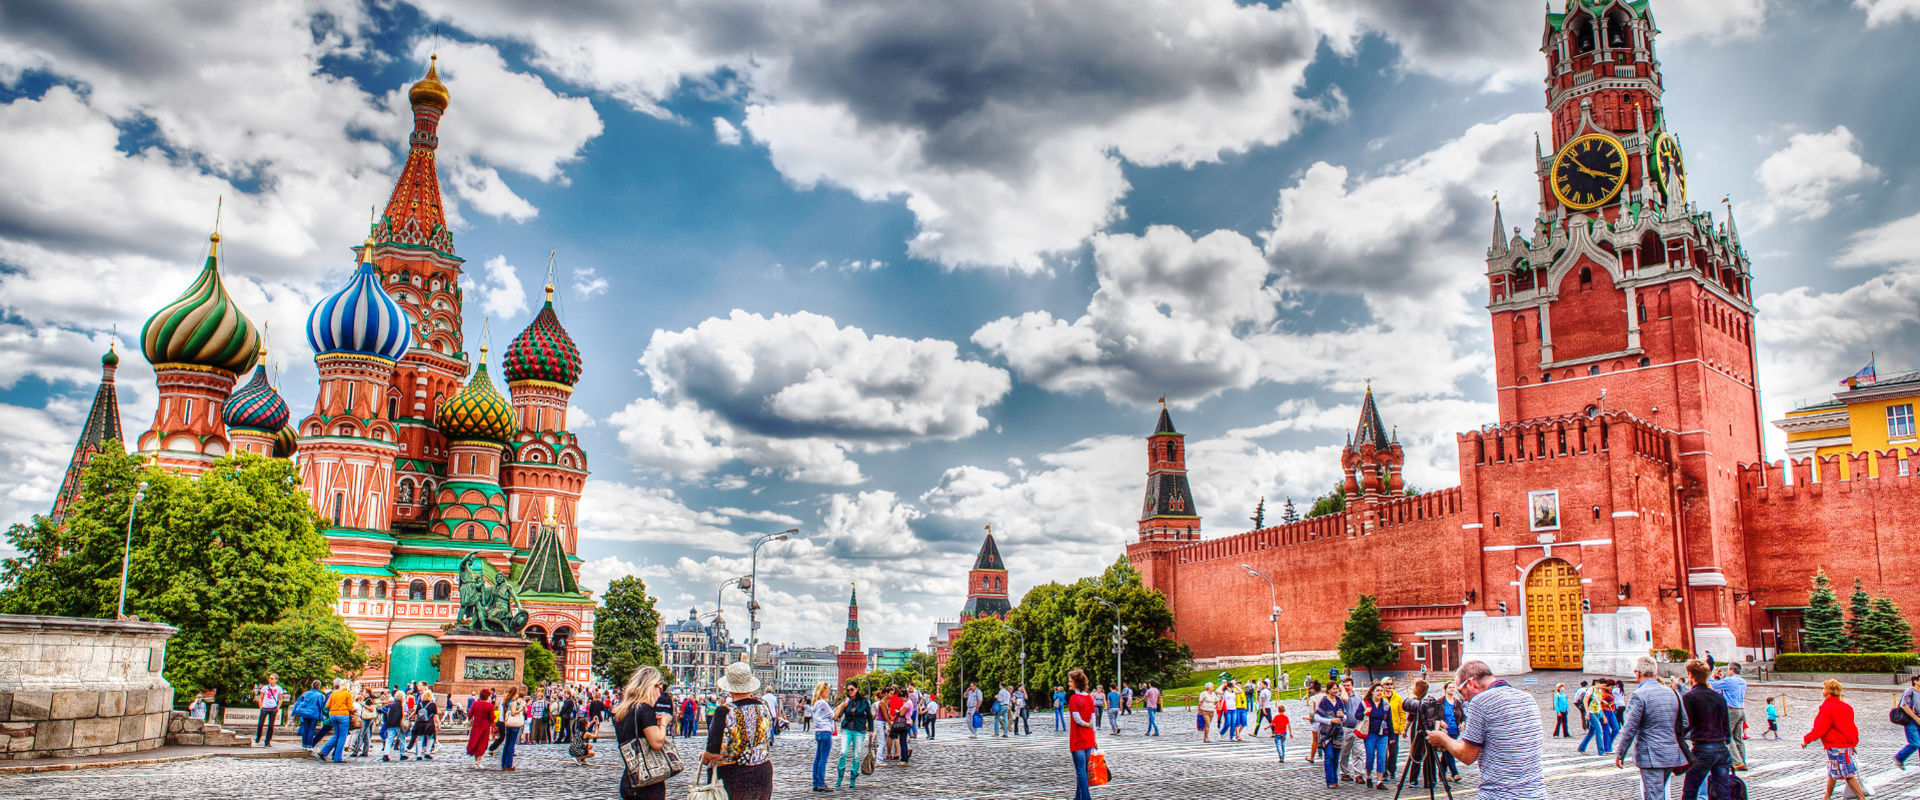 MBBS In Russia, Admission Process, Medical Colleges in Russia